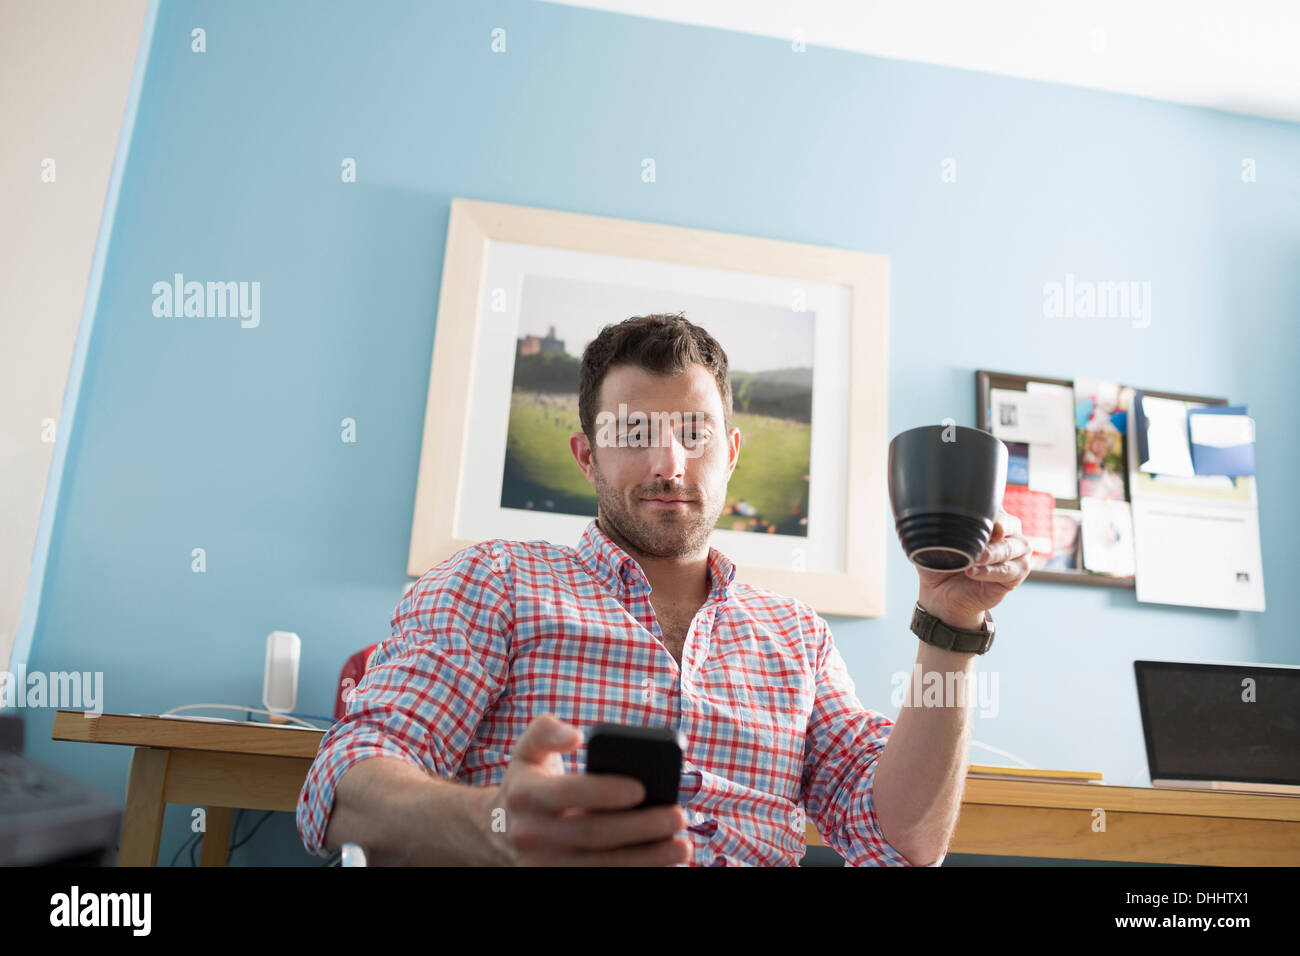 Man sitting at desk with smartphone and coffee cup - Stock Image